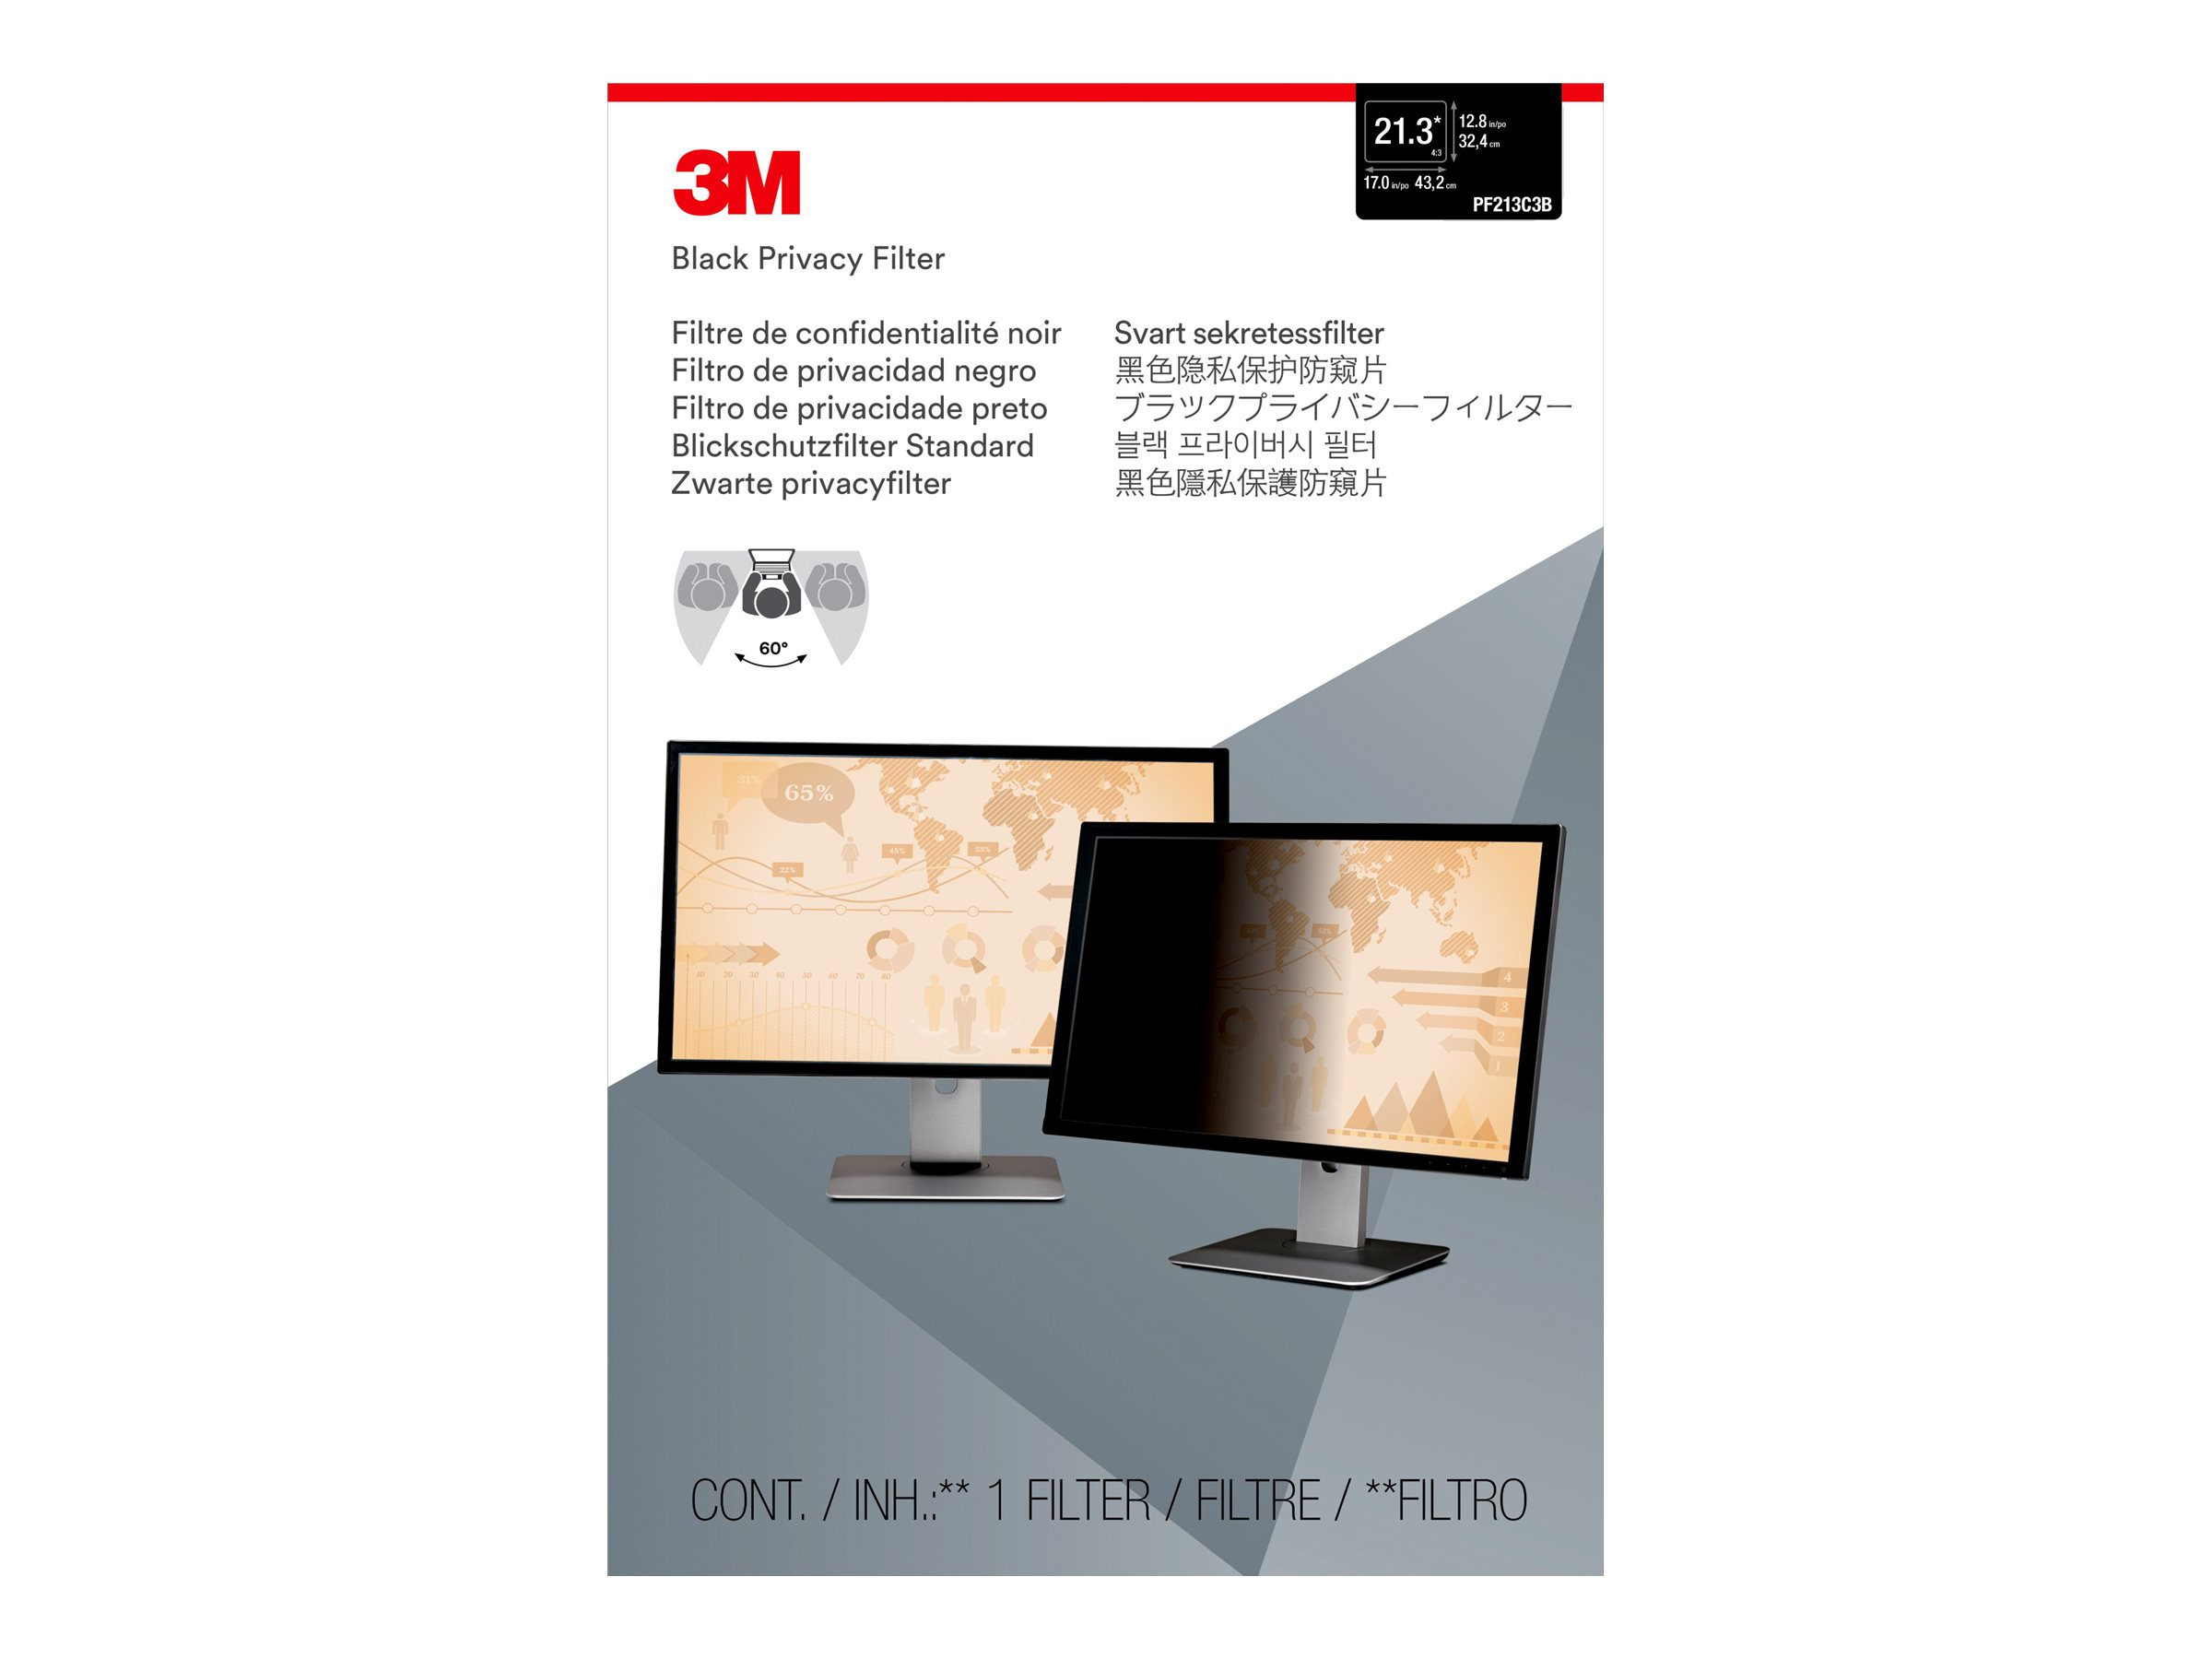 3M Privacy Filter for 21.3